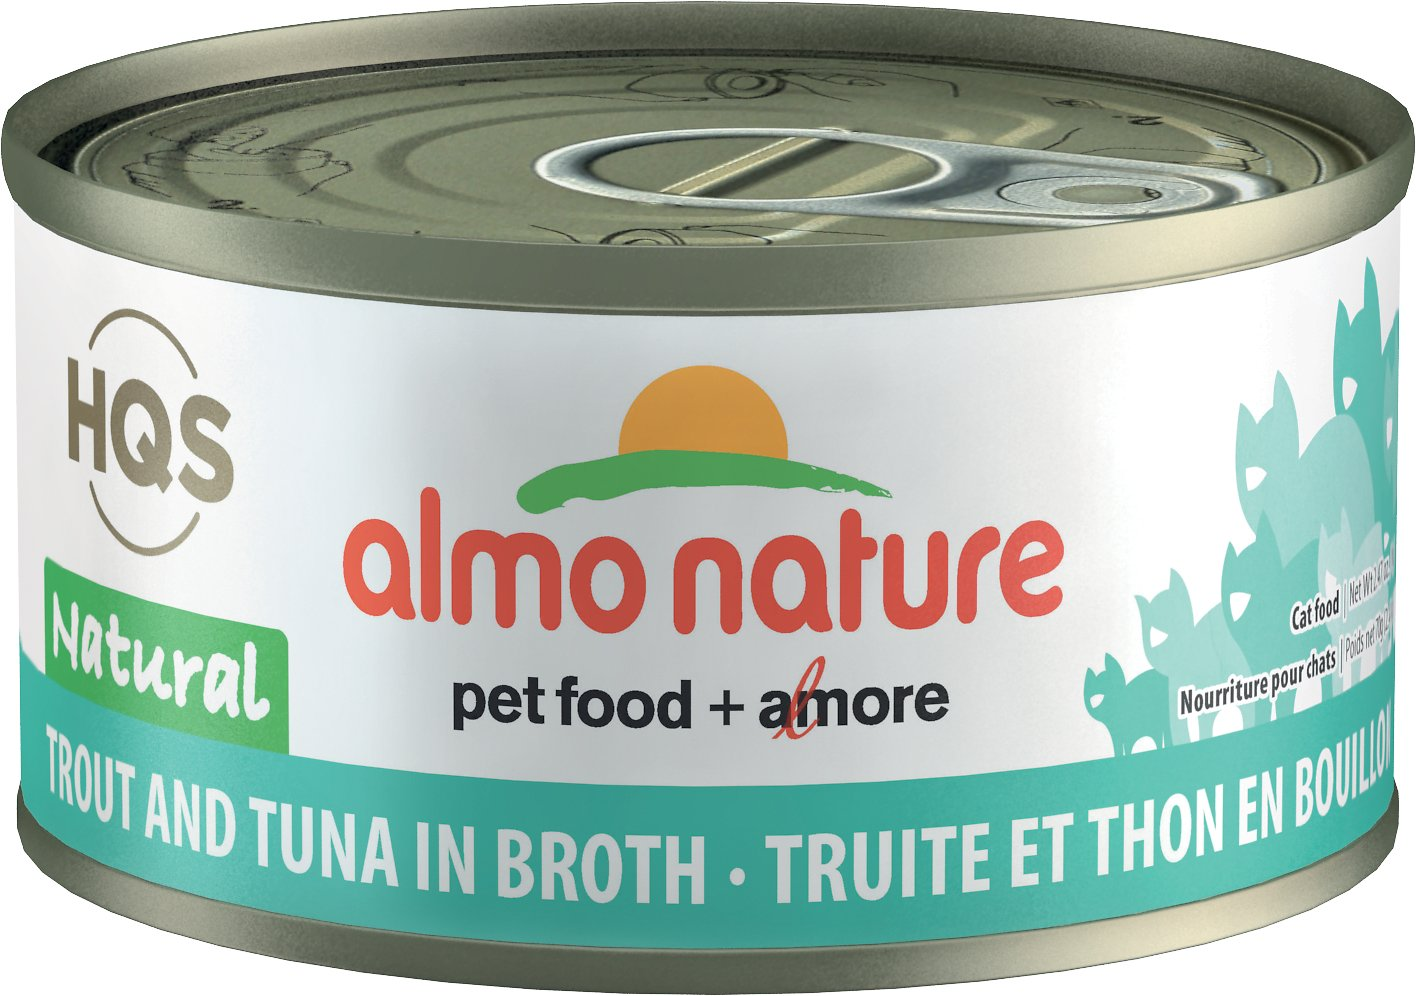 Almo Nature Natural Trout & Tuna in Broth Grain-Free Canned Cat Food, 2.47-oz